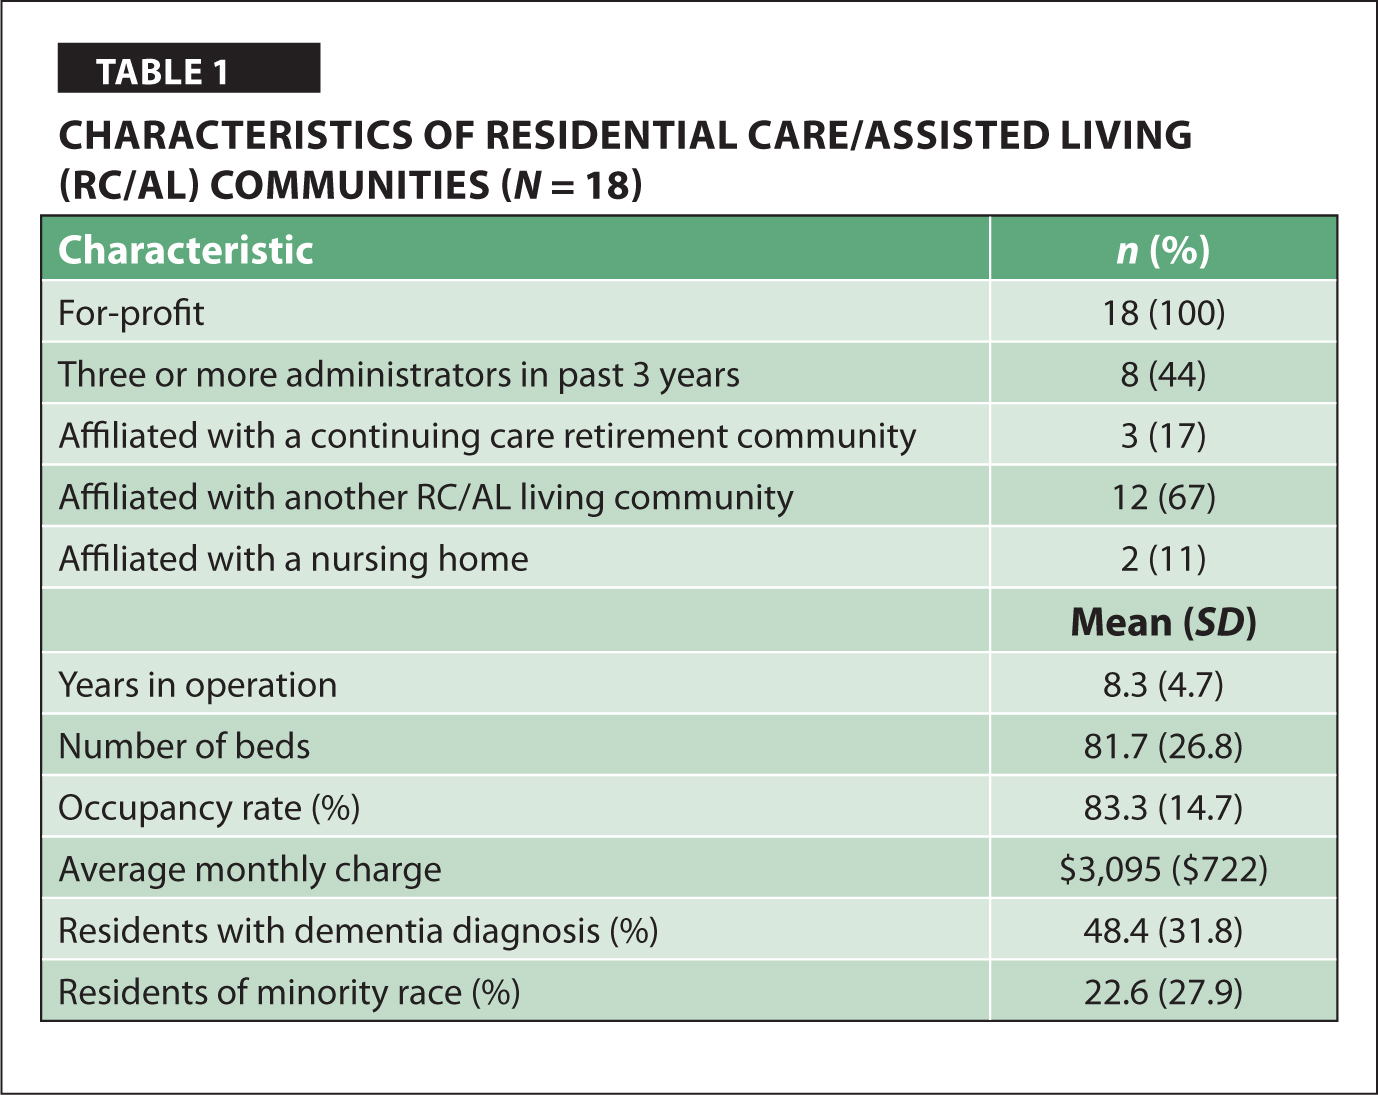 Characteristics of Residential Care/Assisted Living (RC/AL) Communities (N = 18)